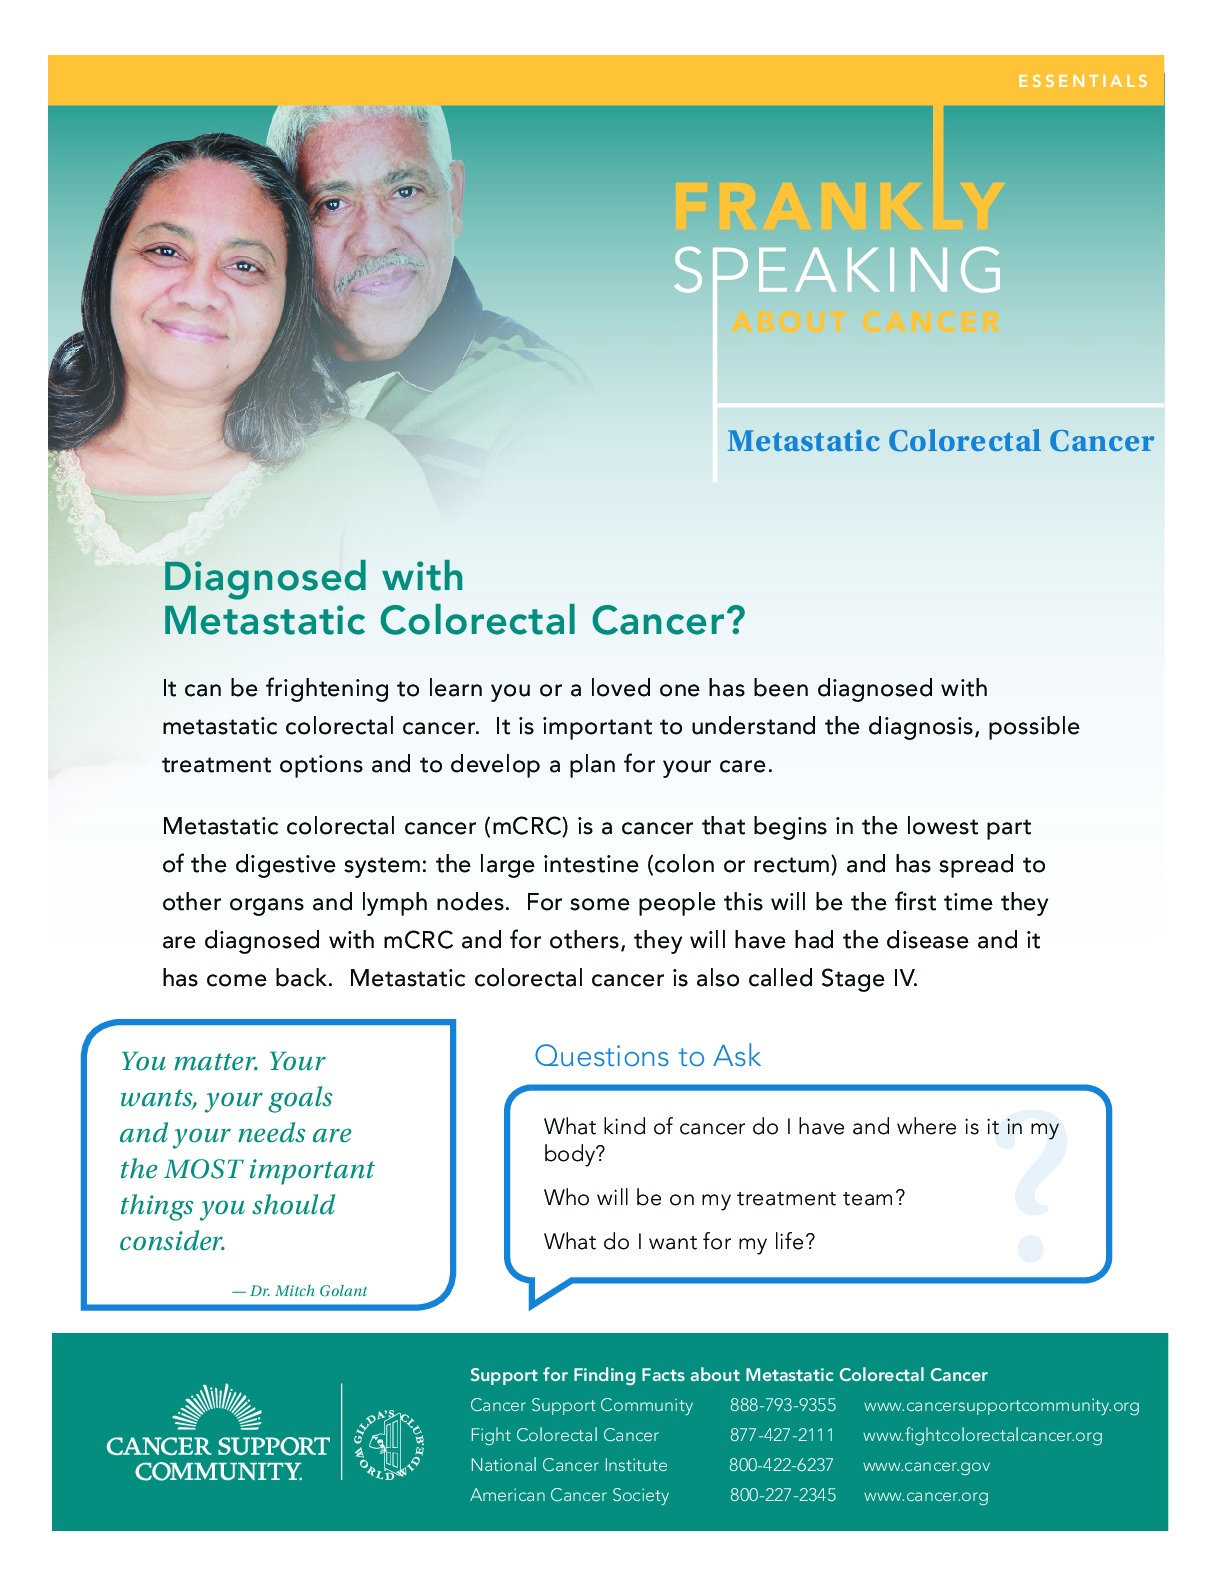 Frankly Speaking About Cancer: Metastatic Colorectal Cancer